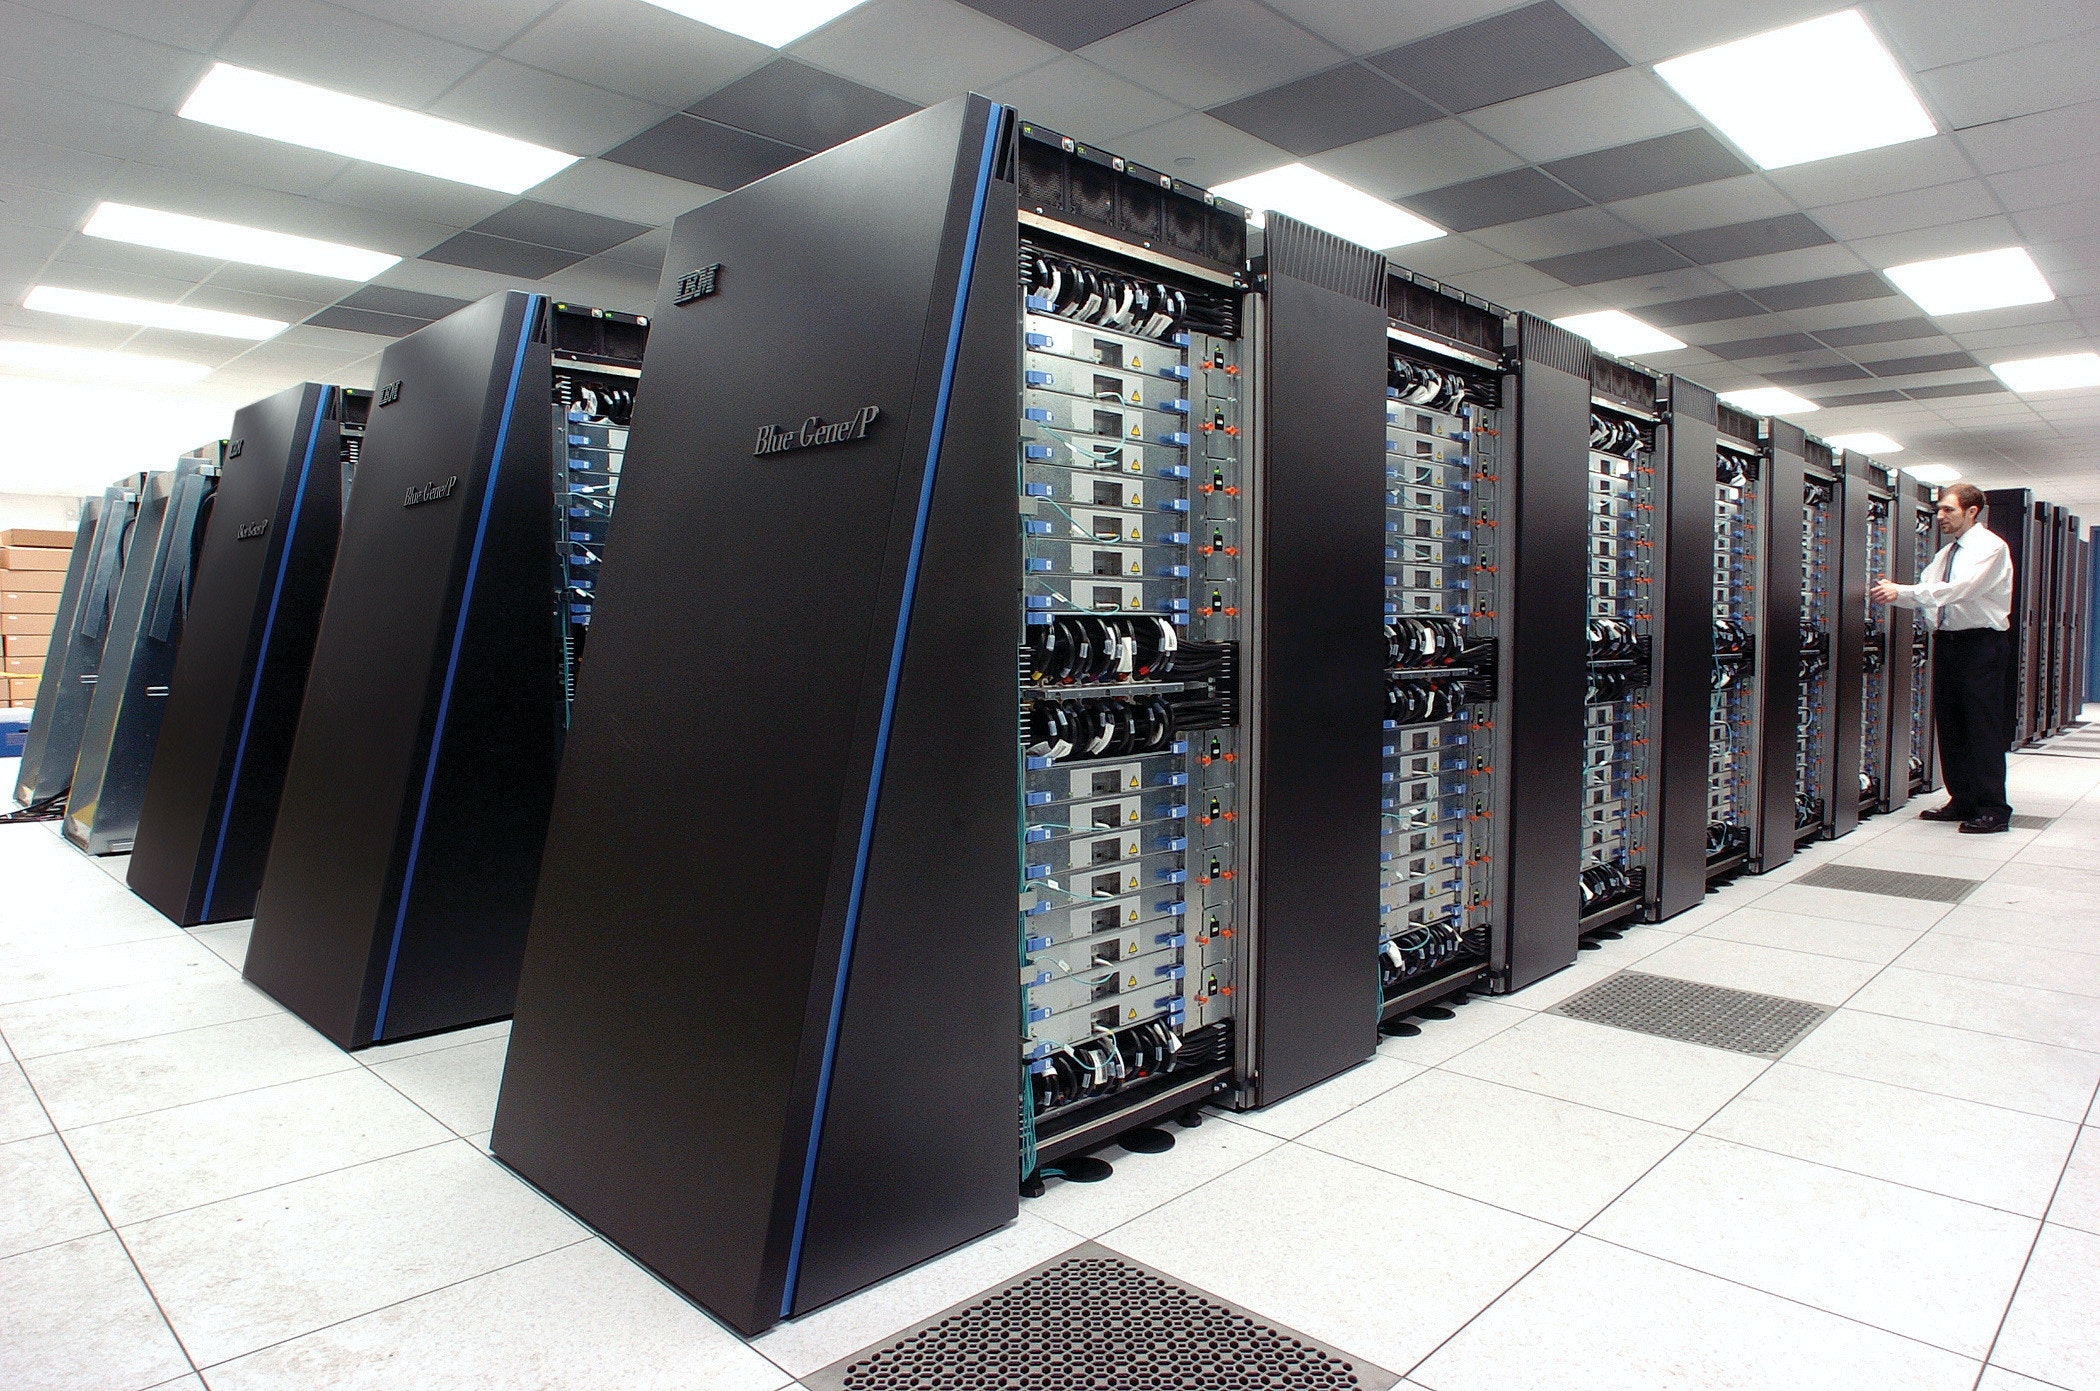 Supercomputer, Computer, ENIAC, TOP500, National Supercomputer Center in Guangzhou, , IBM, Supermicro, Microcomputer, High performance computing, super komputer, technology, electronic device, server, computer network, computer cluster, computer, product, computer case